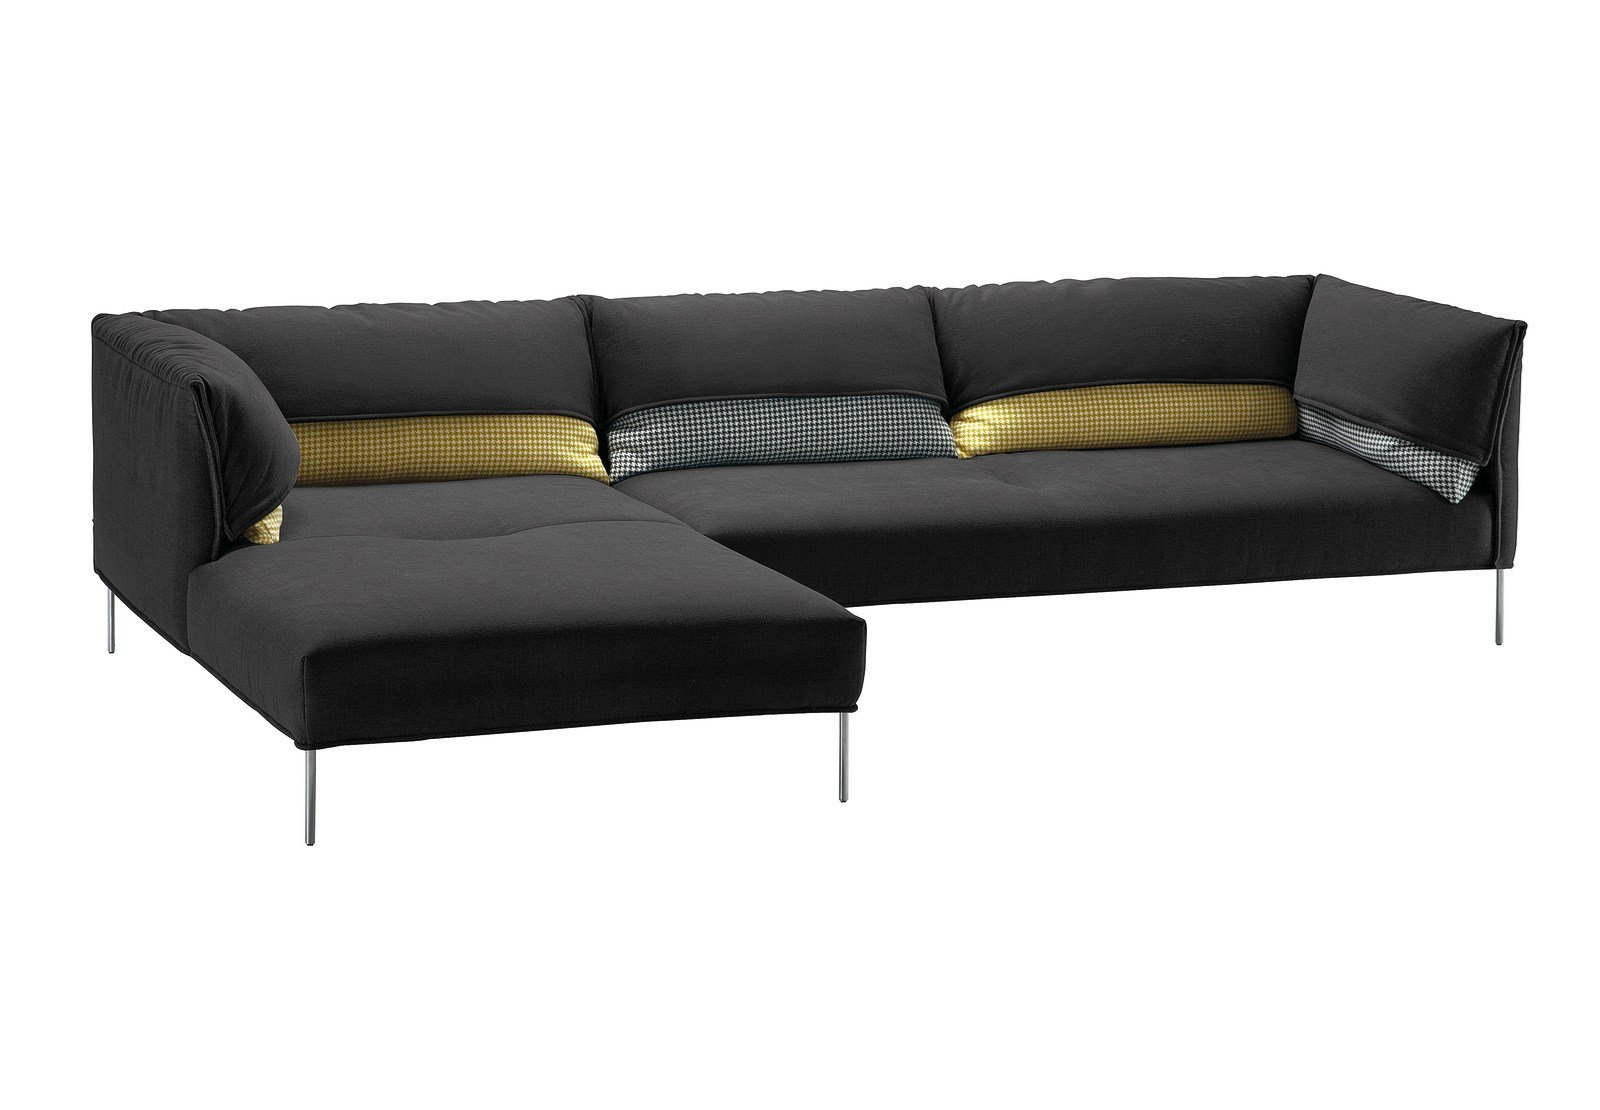 sofa with removable cover undercover by zanotta design. Black Bedroom Furniture Sets. Home Design Ideas